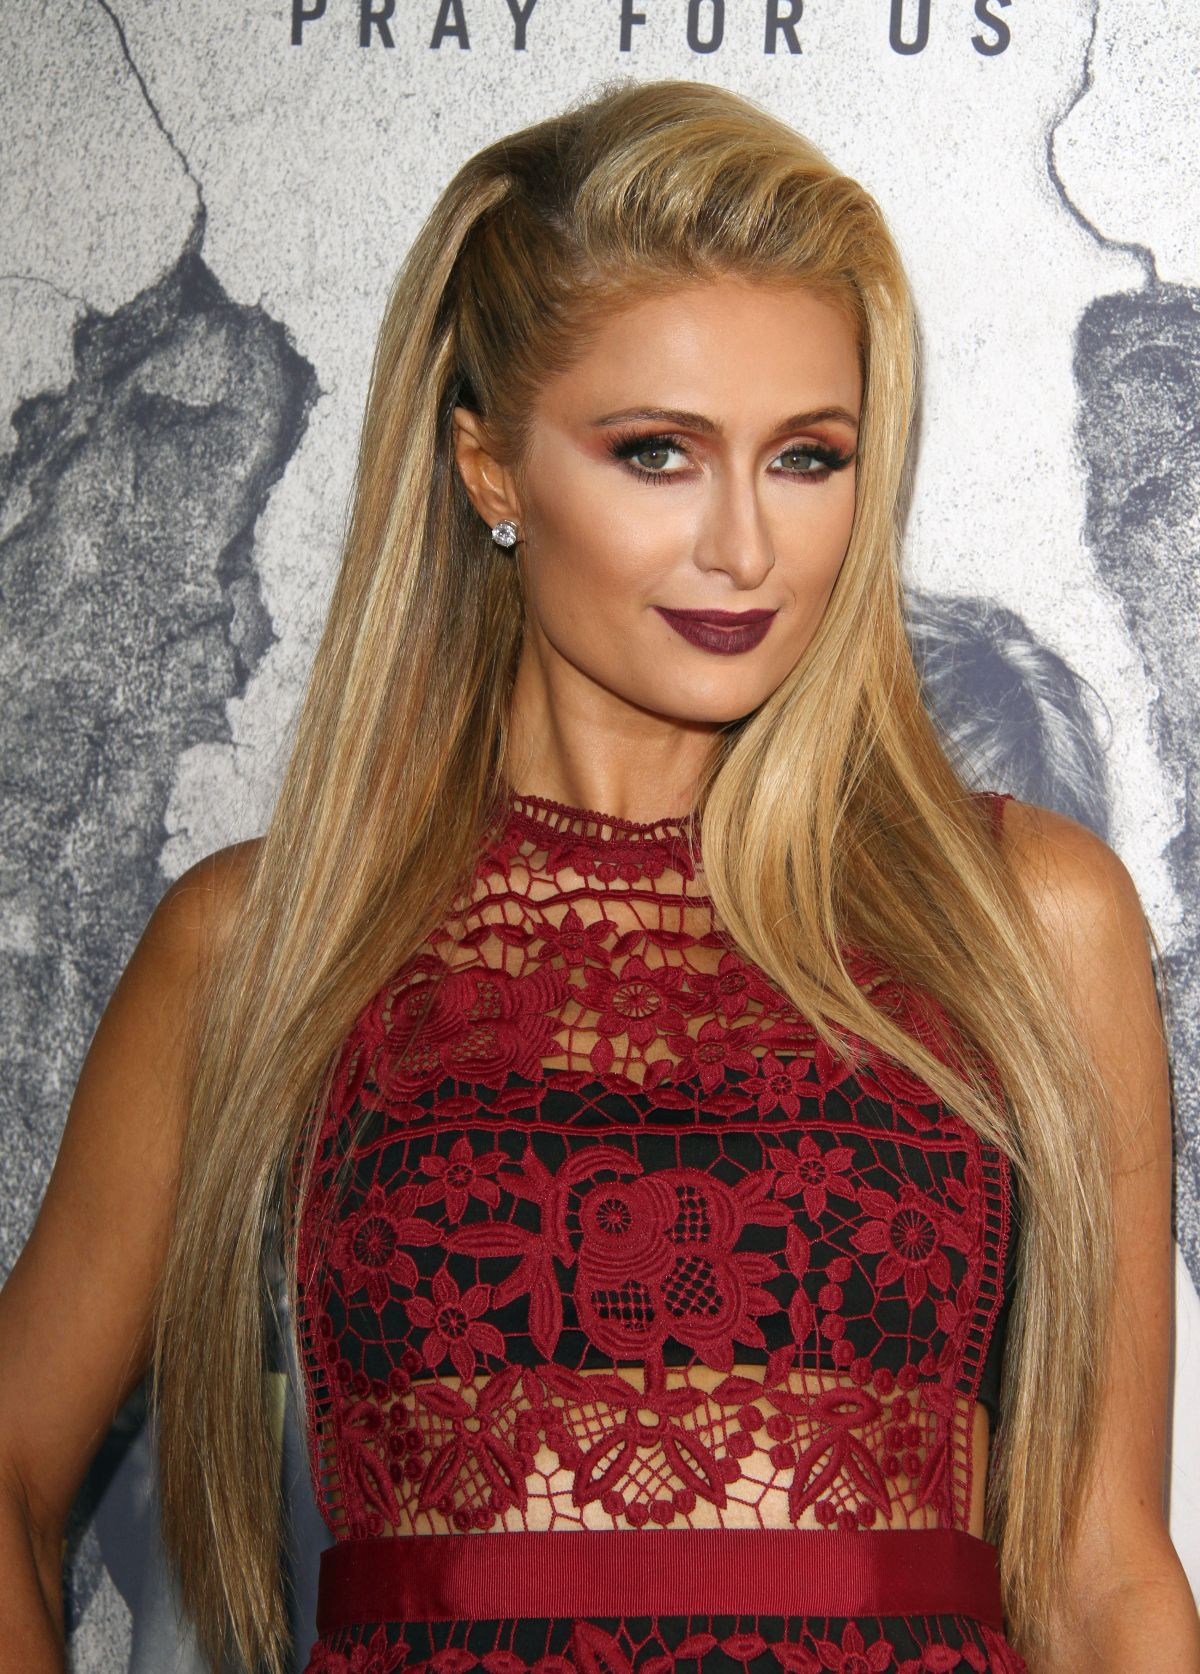 Paris Hilton Hot Swimsuit Pictures, Sexy Bikini Photos ... Paris Hilton